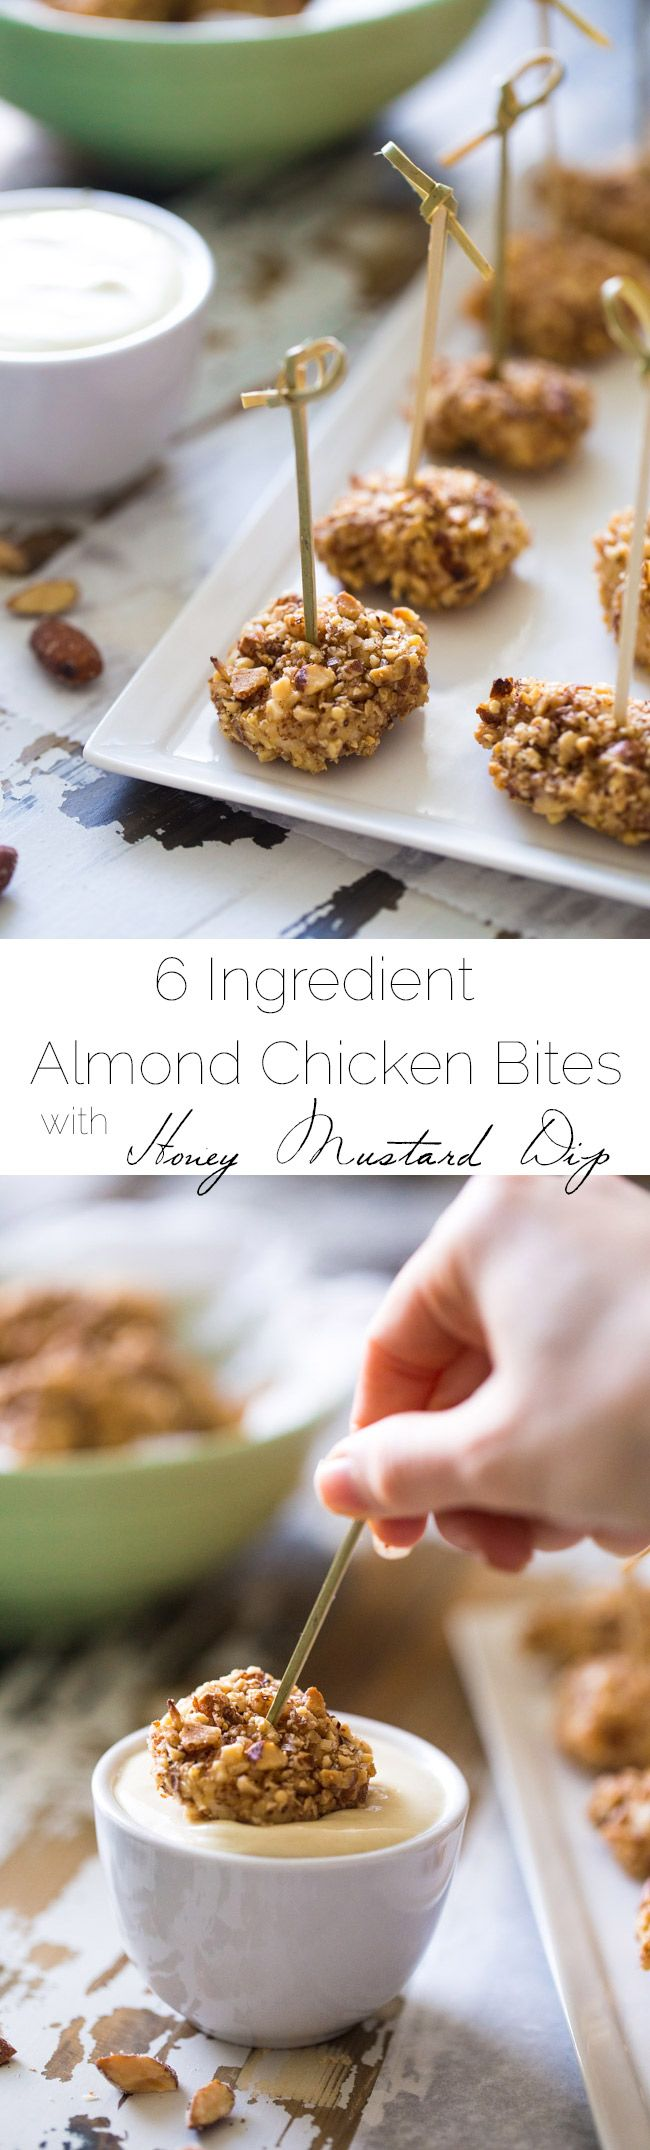 6 Ingredient Almond Chicken Bites with Honey Mustard Dip  - SO easy, crunchy and healthy! Using Greek Yogurt in the dip makes this a healthy appetizer! | Foodfaithfitness.com | #recipe @bluediamond #ad